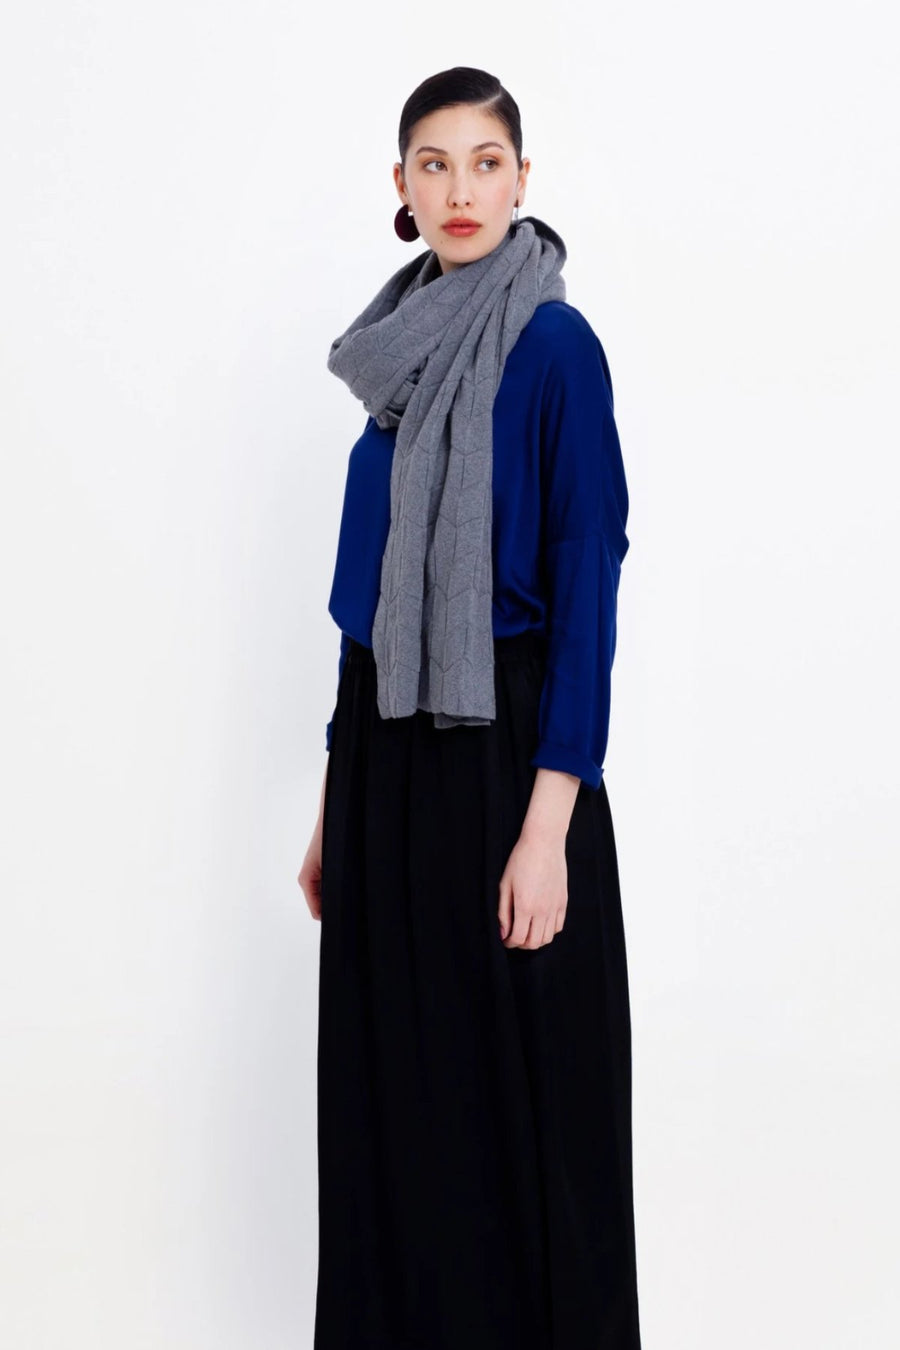 Elk Eura Scarf -Pavement - Shop Online At Mookah - mookah.com.au